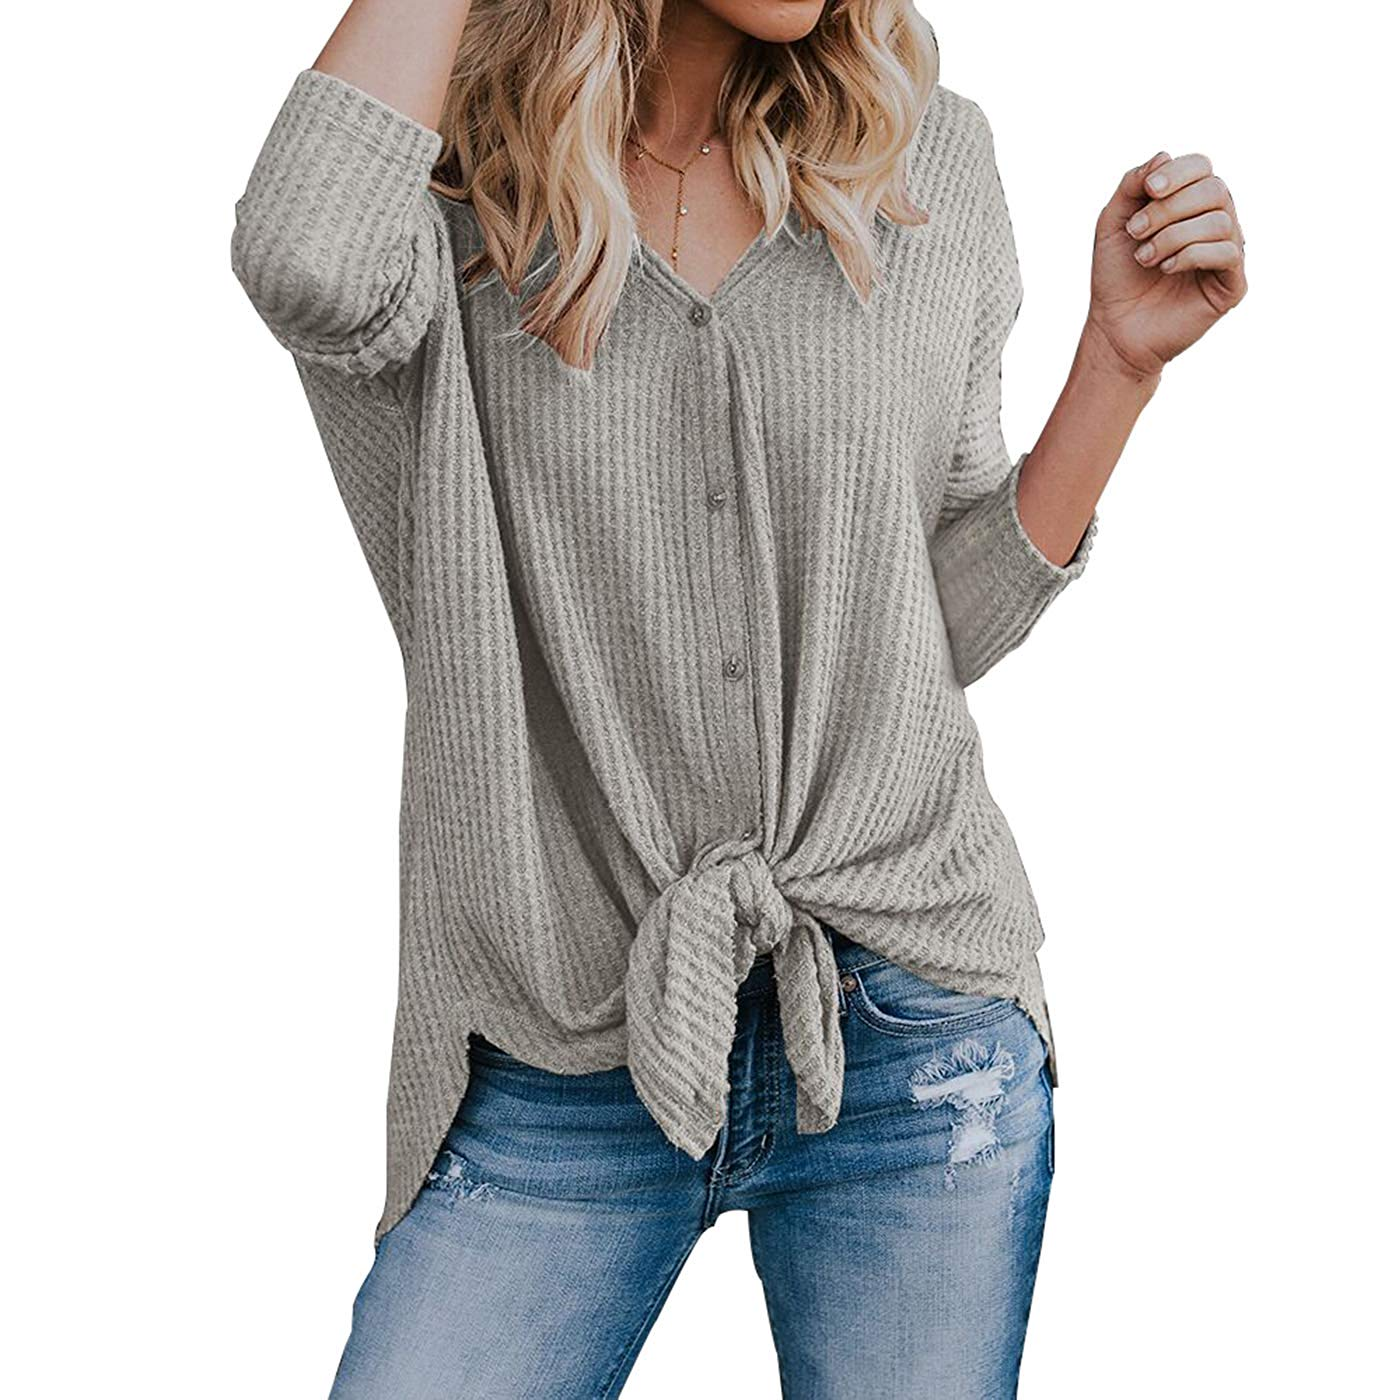 d782ecb74 Get Quotations · Women's Waffle Knit Fashion Tunic Blouse, Tie Knot Henley  Tops, Loose Fitting Bat Wing